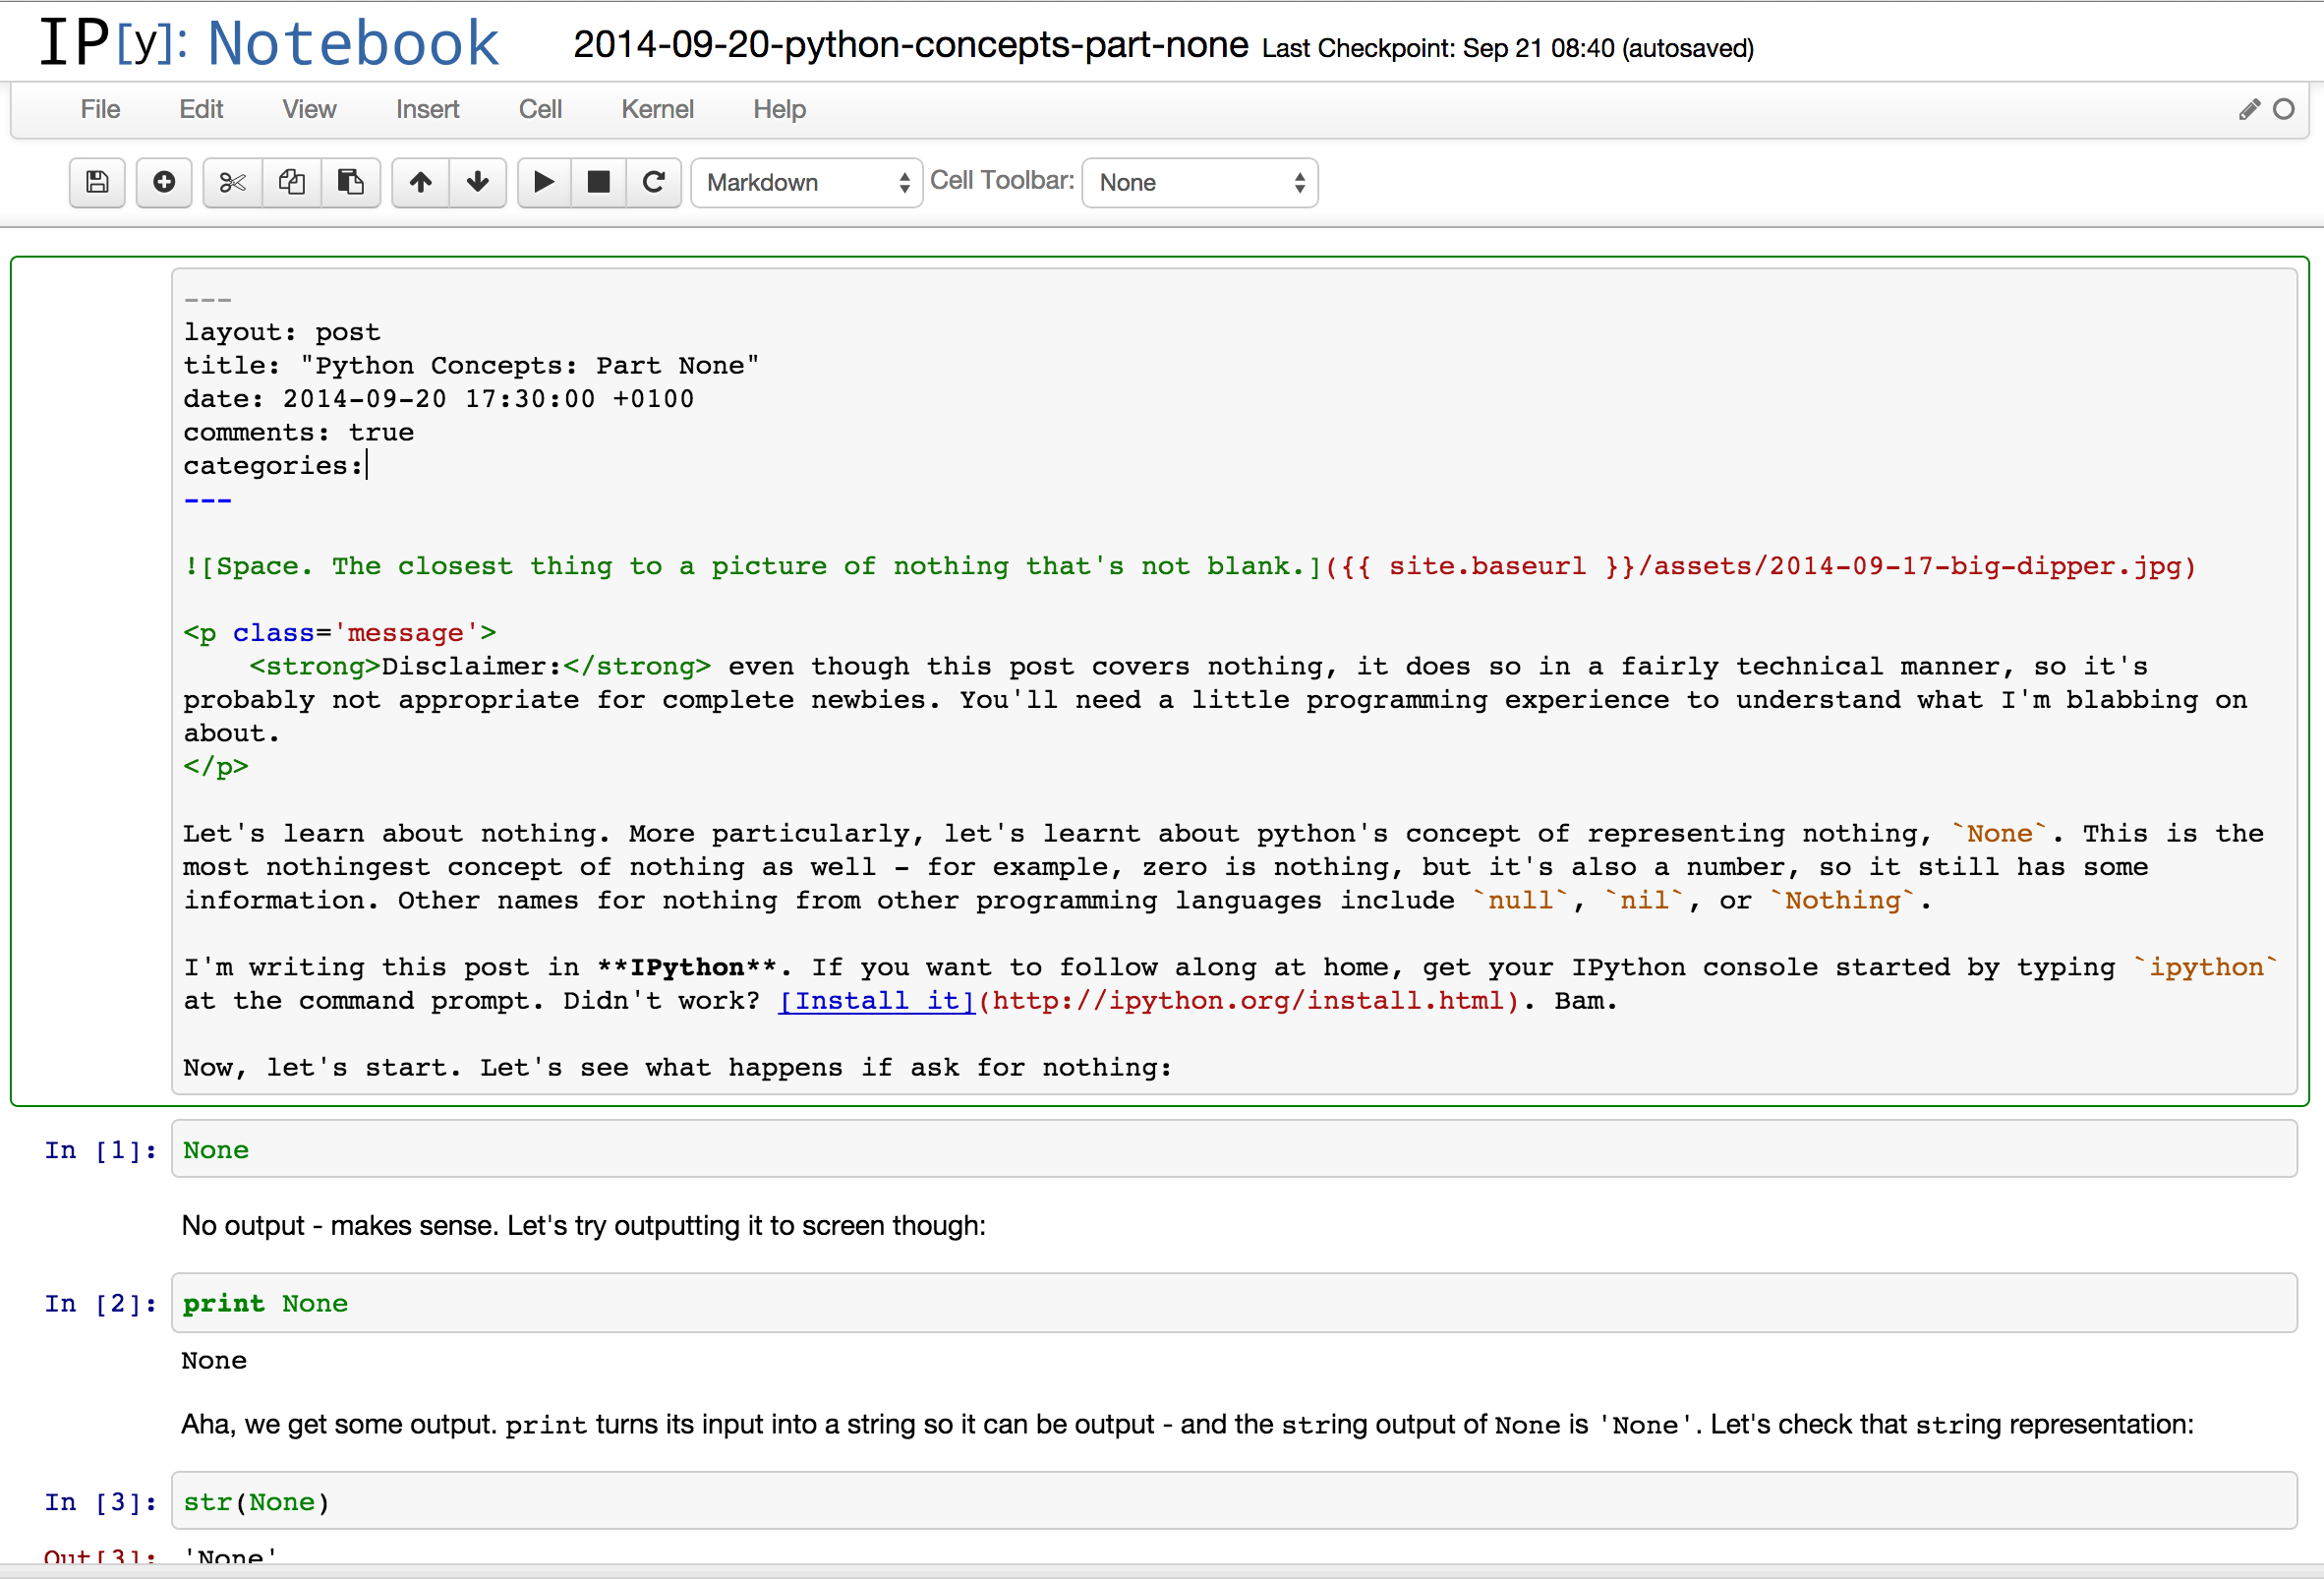 IPython Notebook Interface